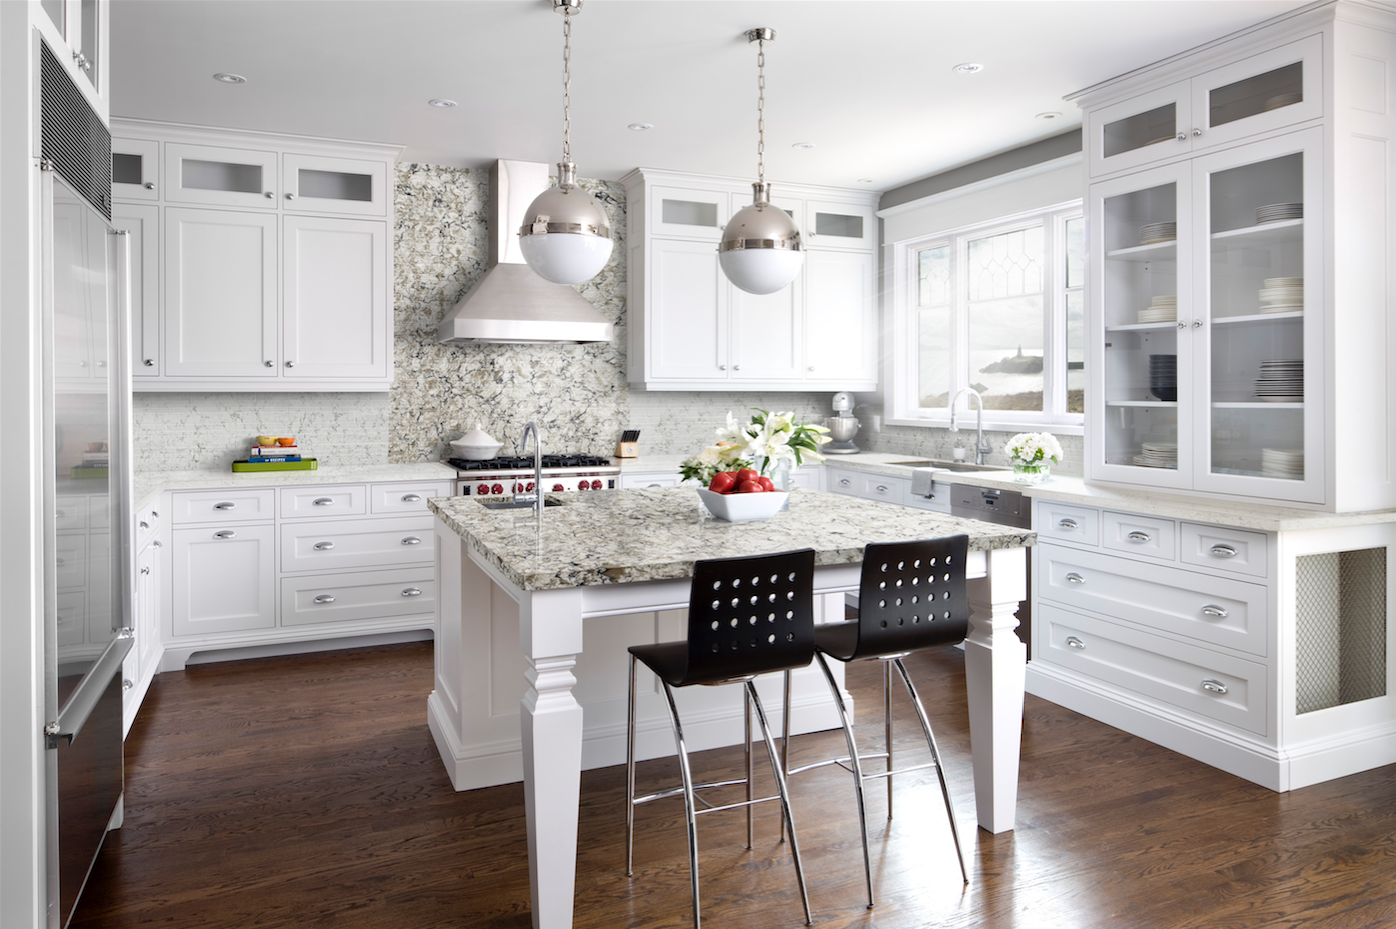 Countertops Trend Toward Nature Inspired Designs Builder